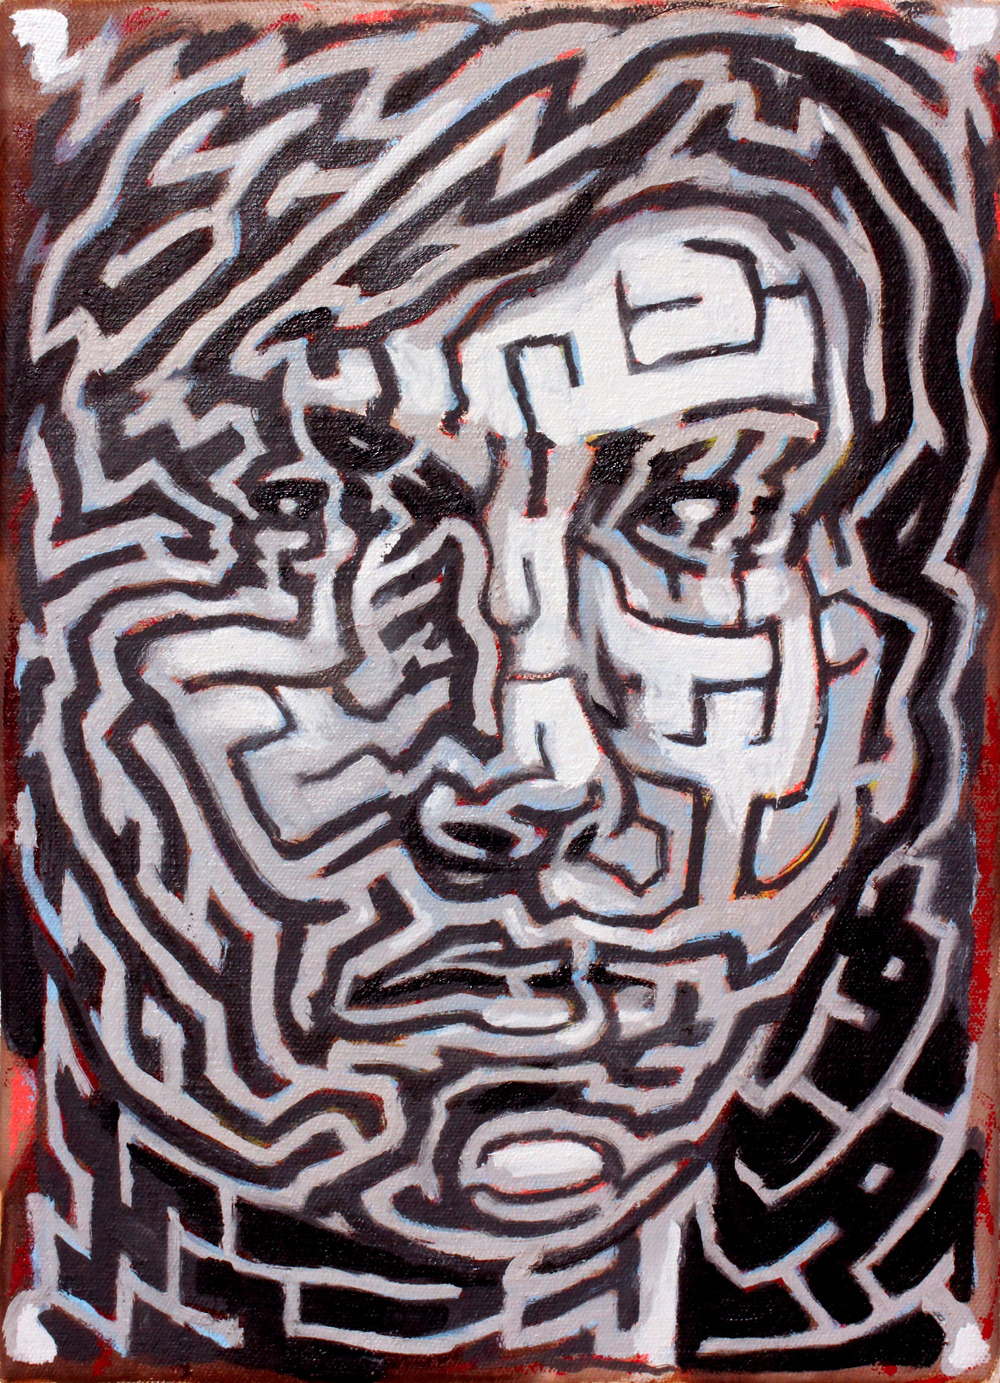 Self Portrait , 12 x 16 in.  Oil on canvas. Available for purchase. (2014)